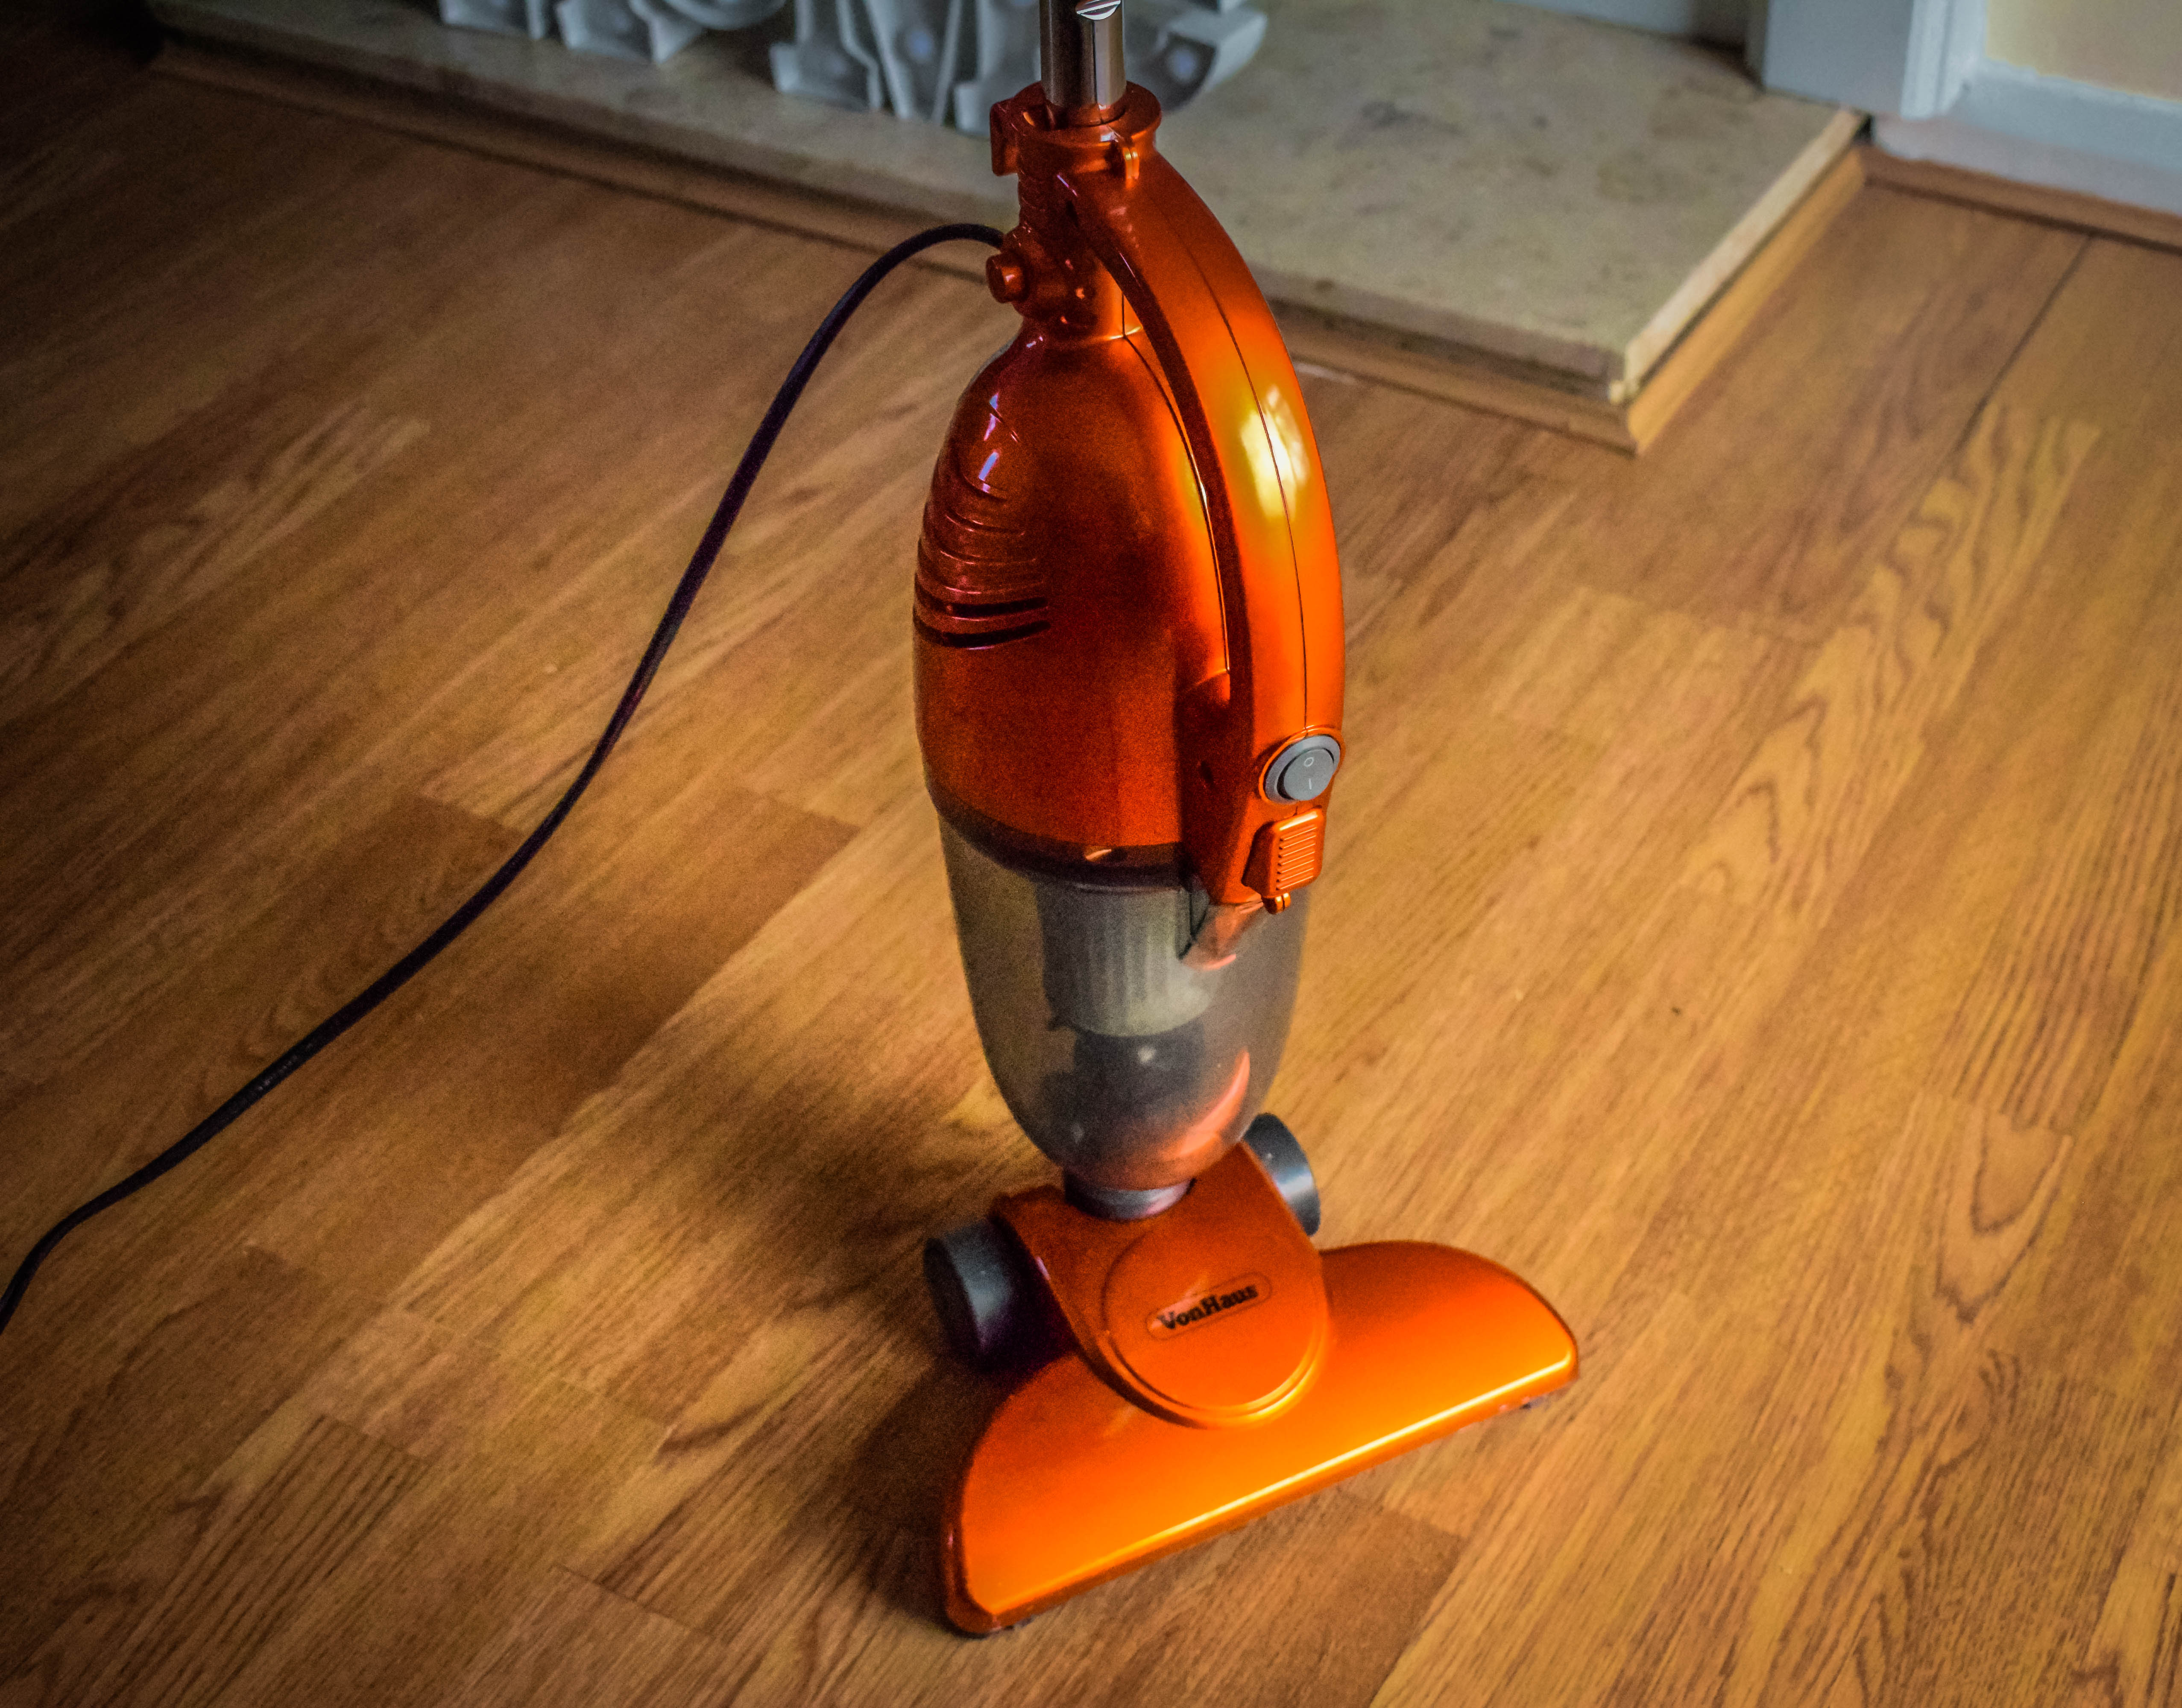 VonHaus 2 in 1 Stick Vacuum